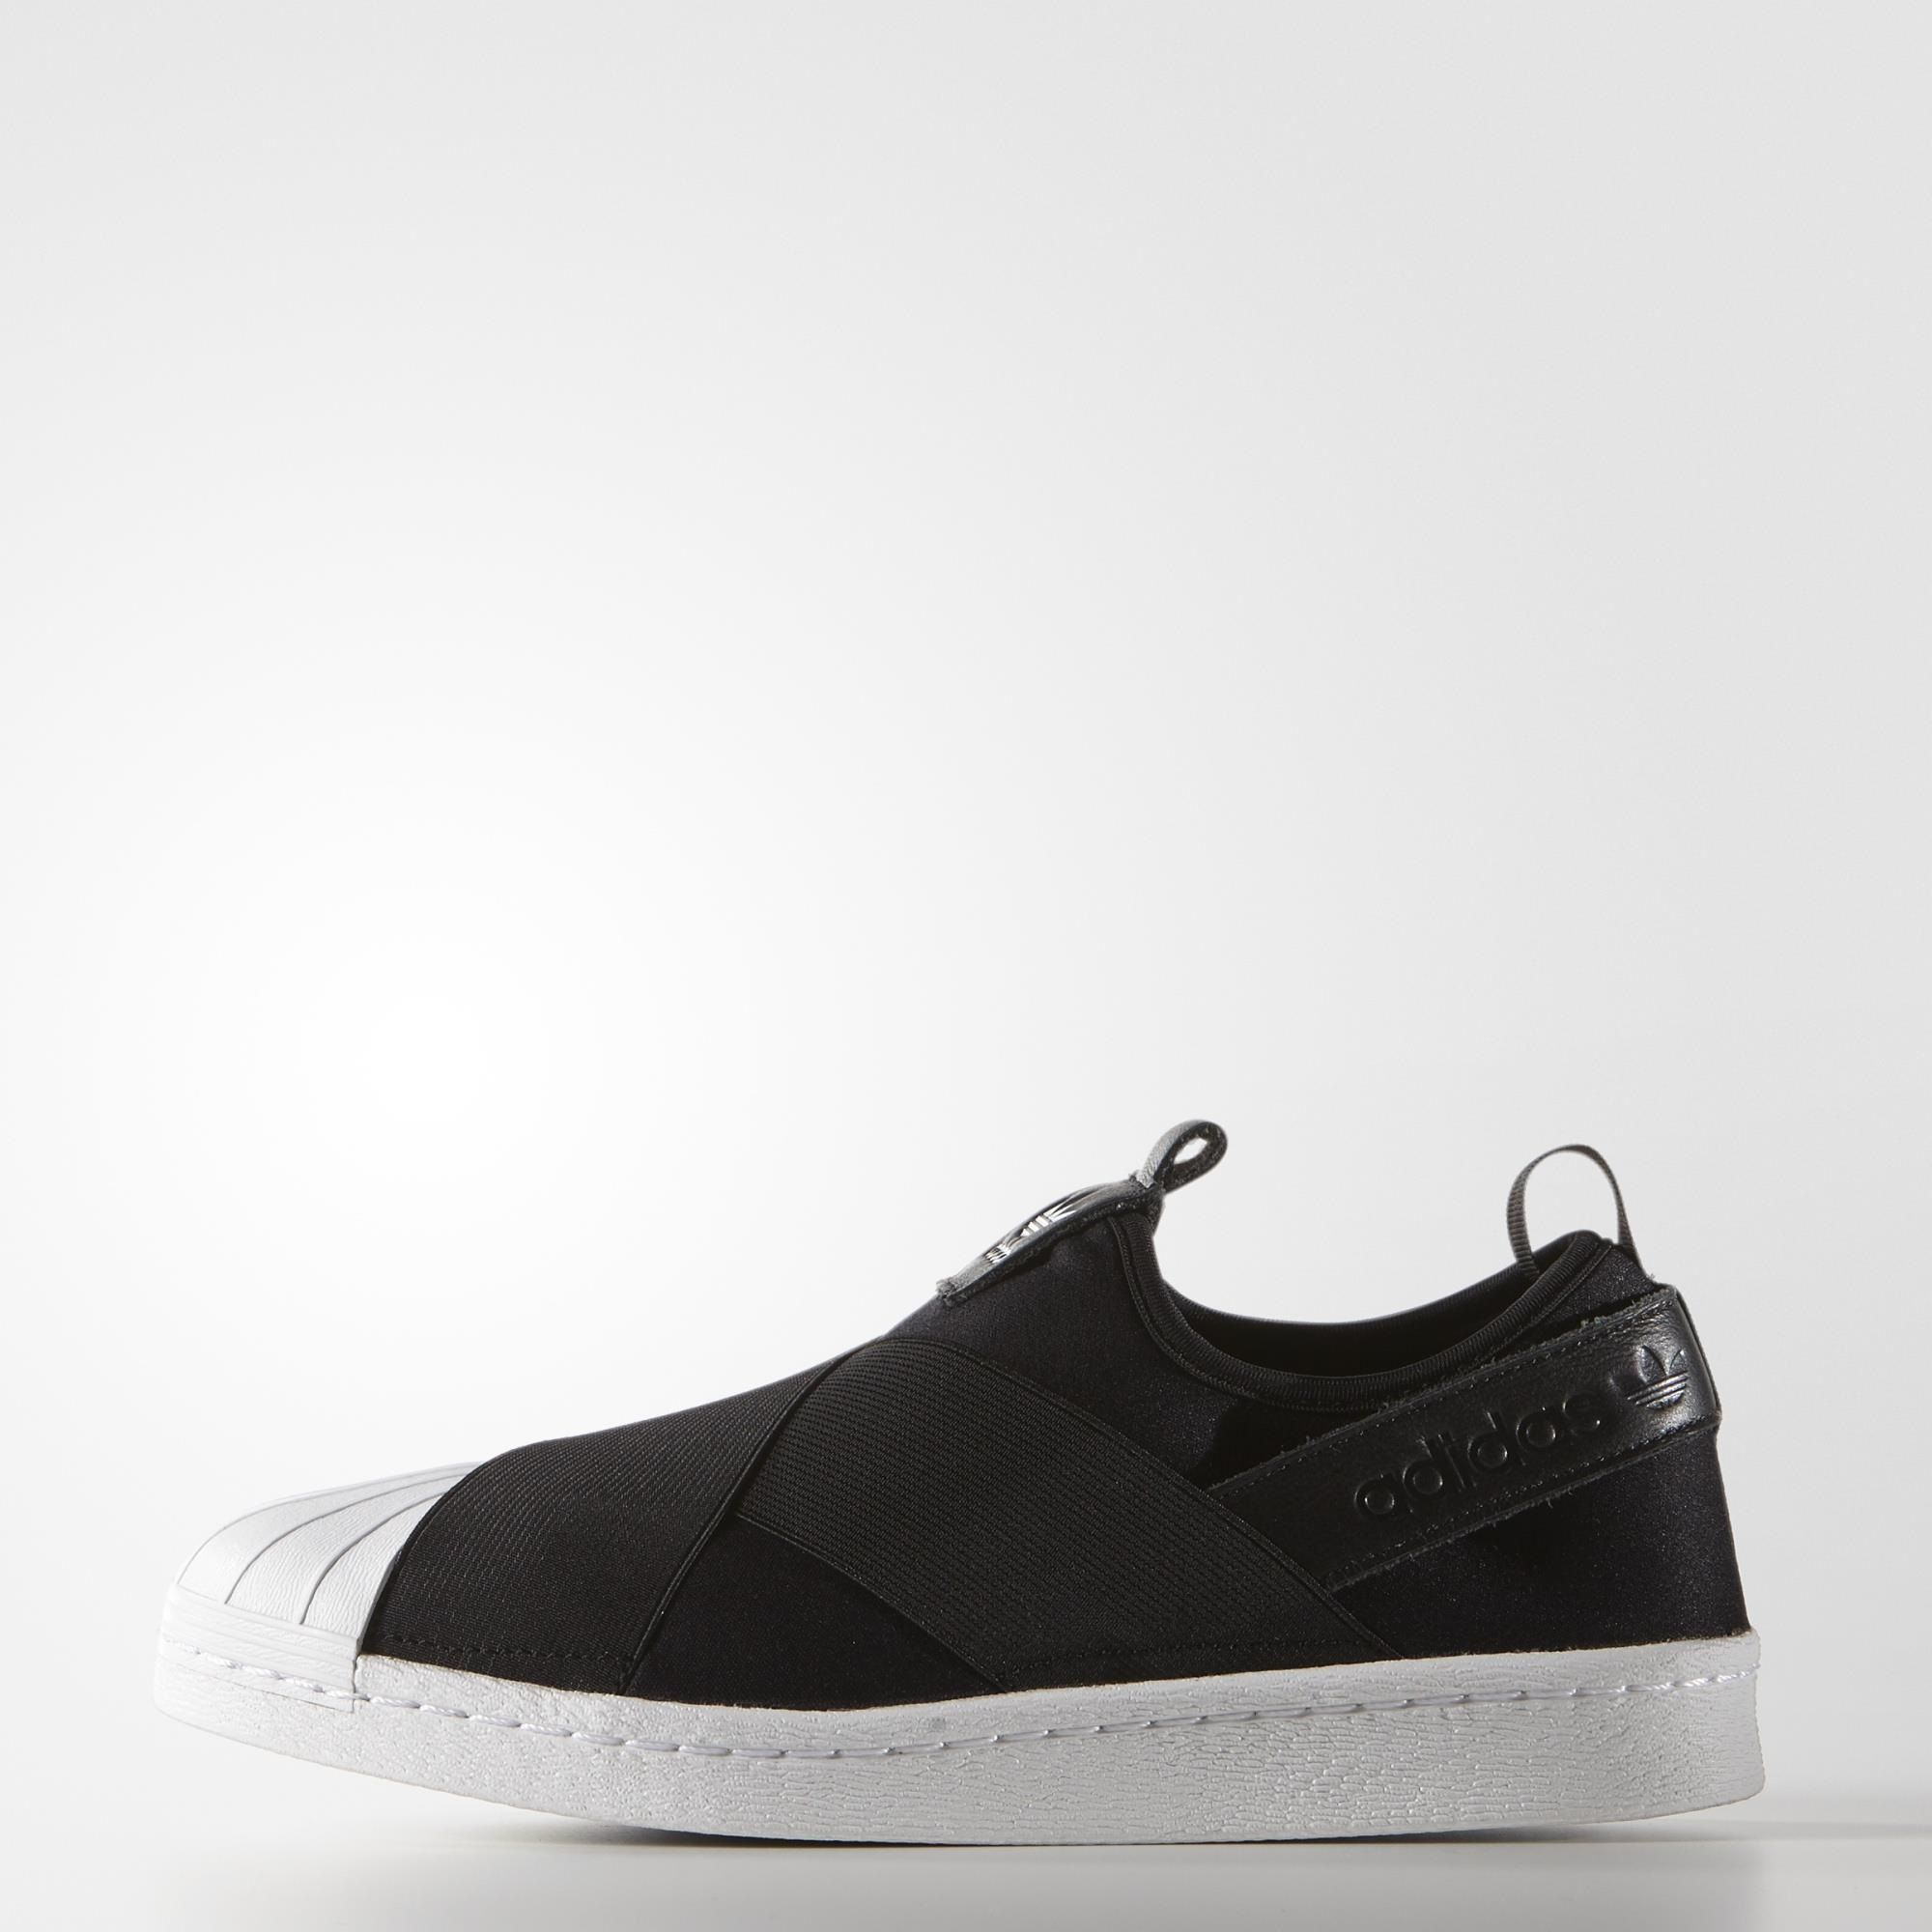 huge discount 6888c 3c956 Superstar Slip-on Shoes | รองเท้า in 2019 | Adidas superstar ...